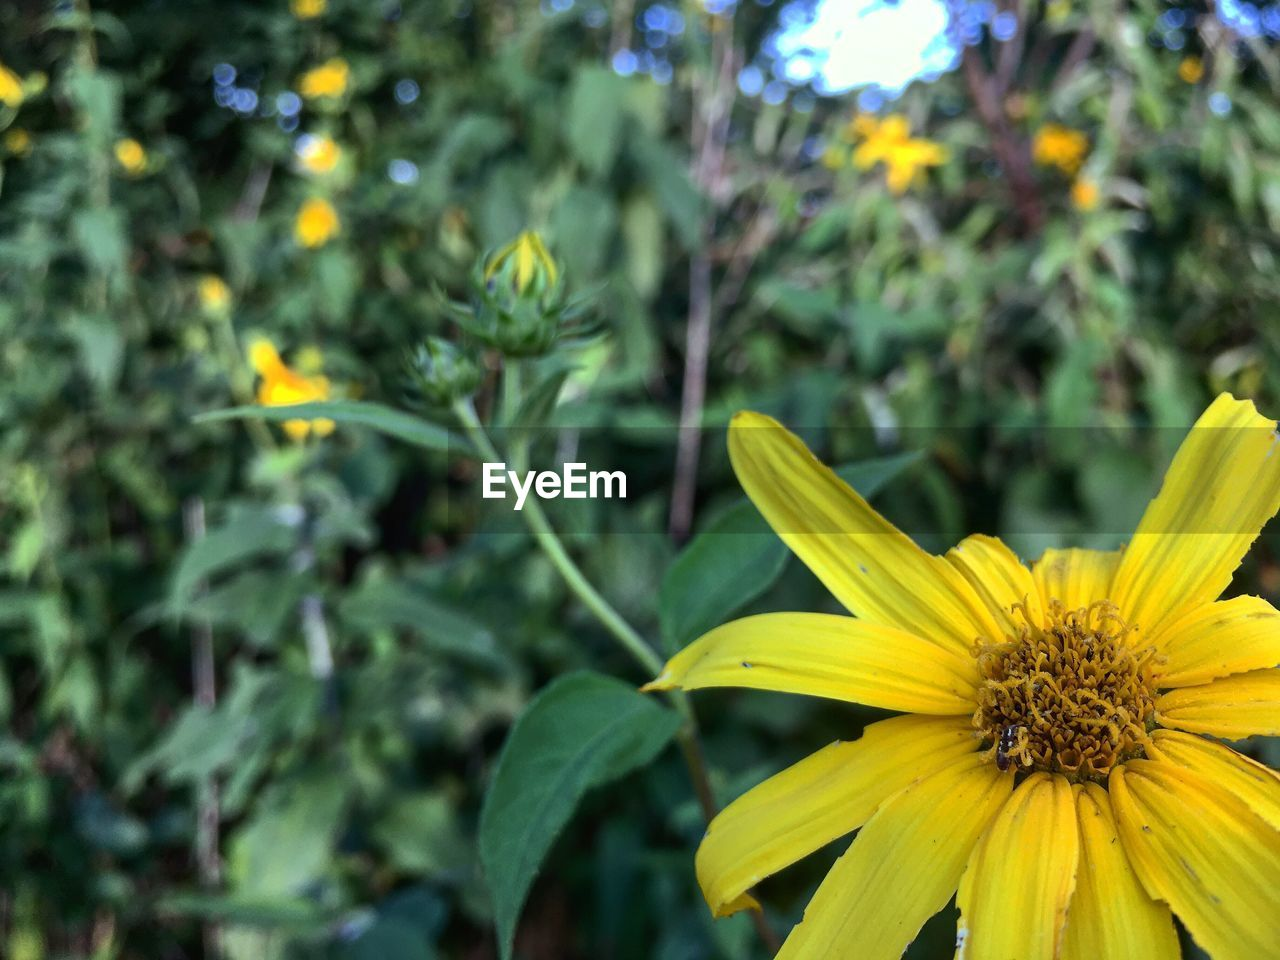 flower, petal, growth, fragility, nature, plant, beauty in nature, freshness, flower head, yellow, focus on foreground, blooming, outdoors, leaf, day, close-up, pollen, green color, no people